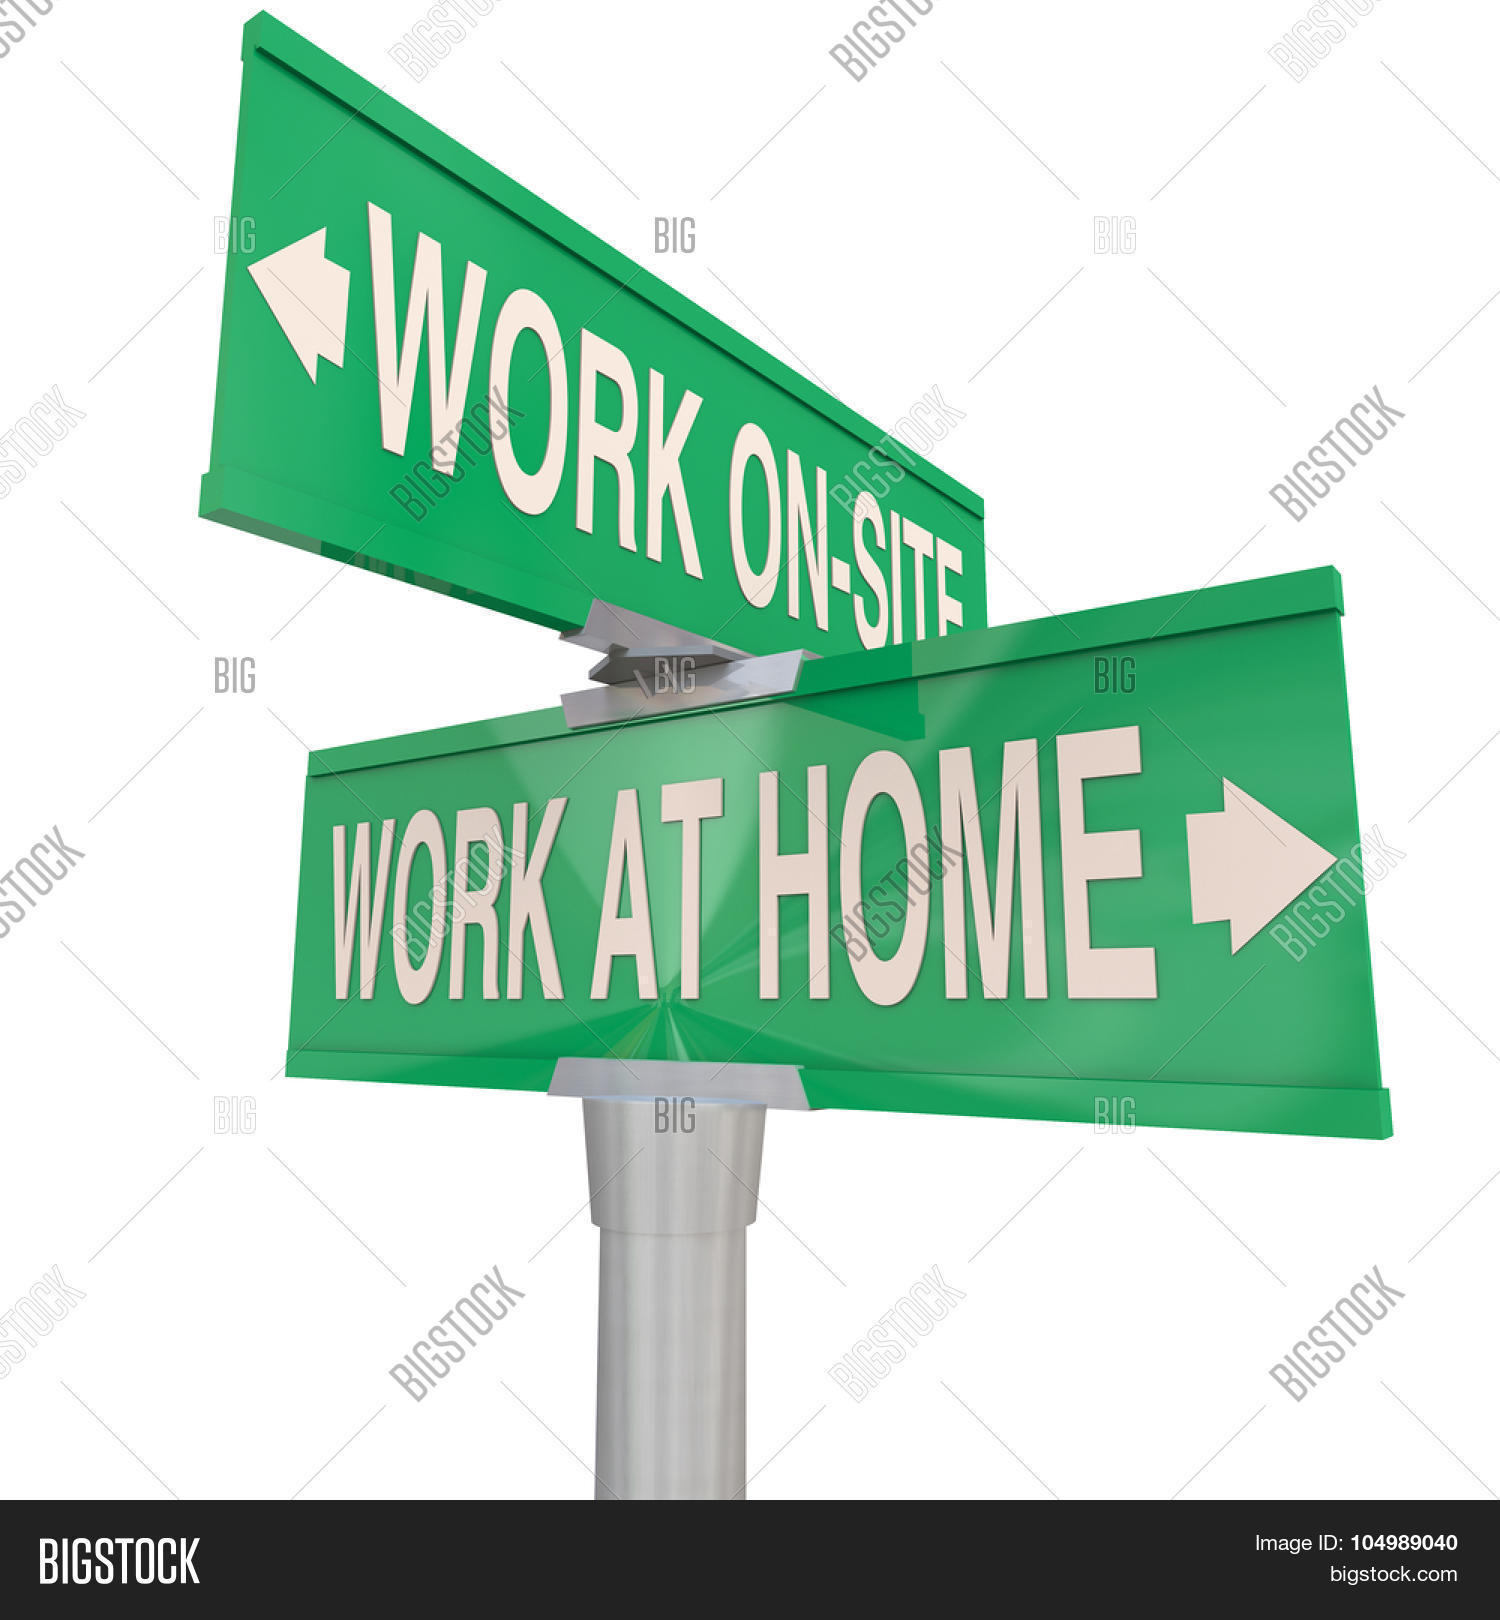 work at home vs on site words on two green way street or road work at home vs on site words on two green 2 way street or road